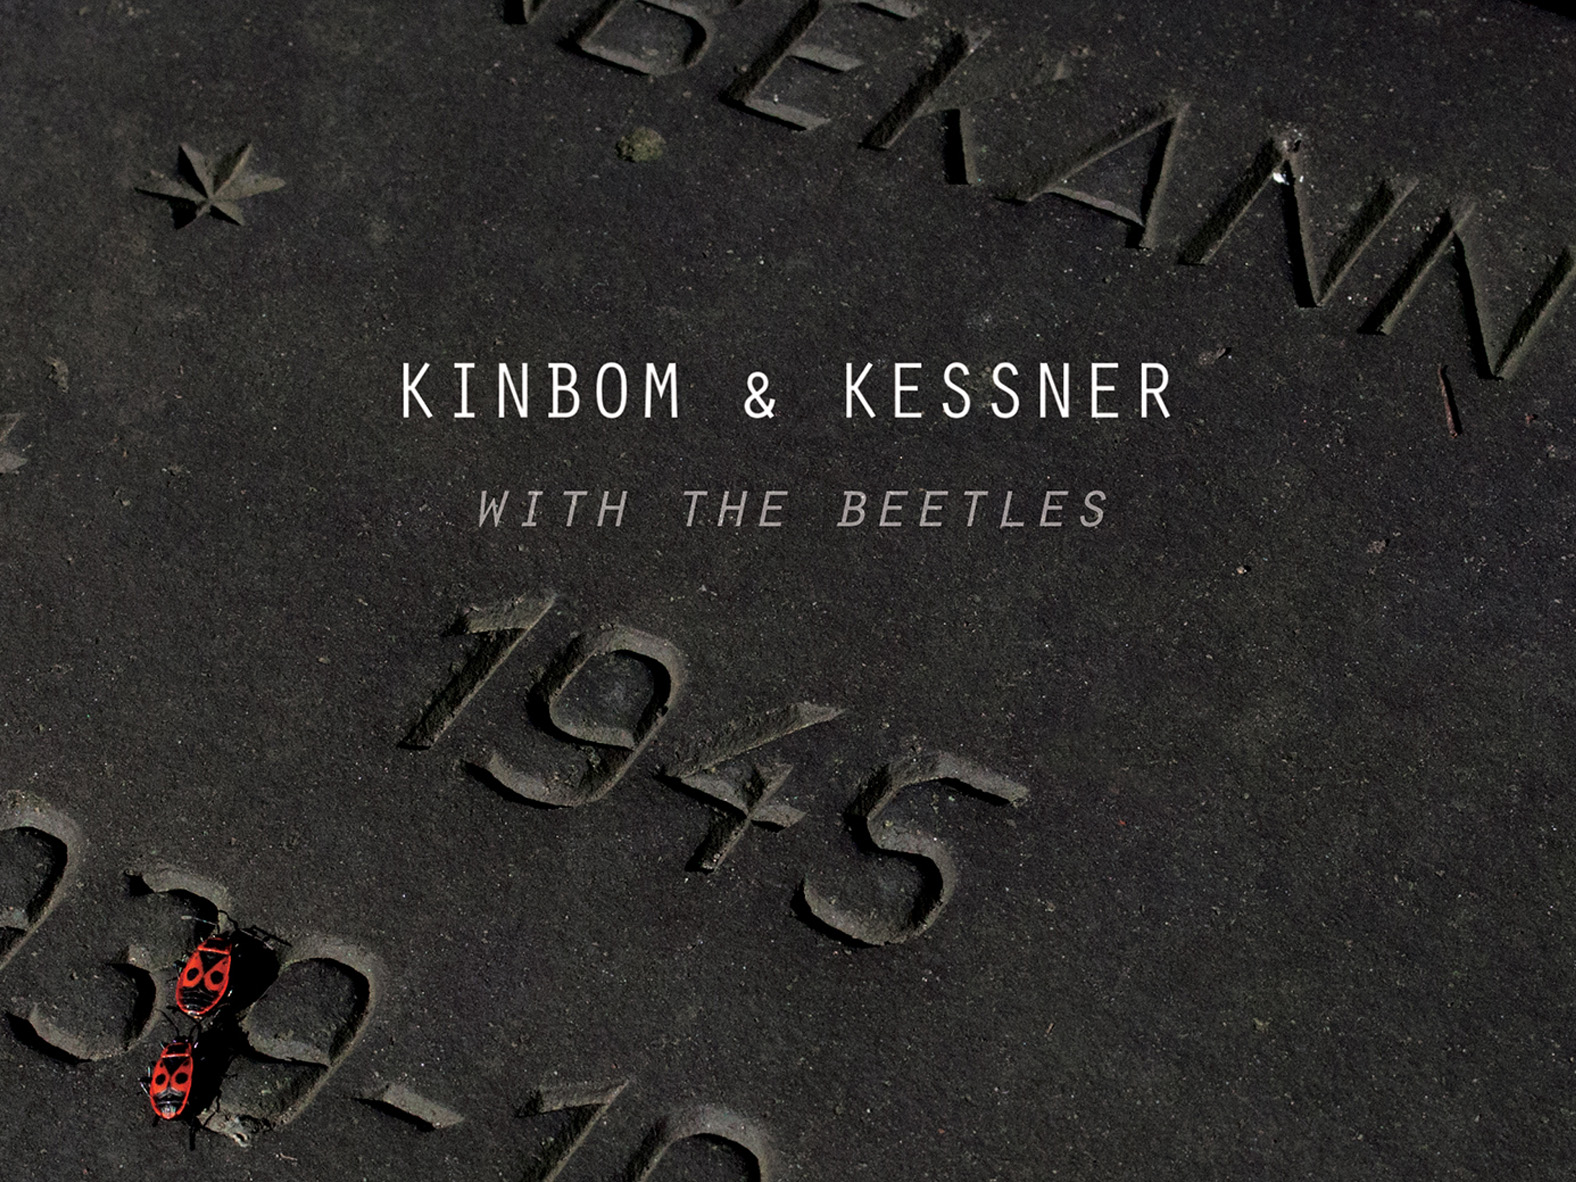 kinbom-kessner-with-the-beetles